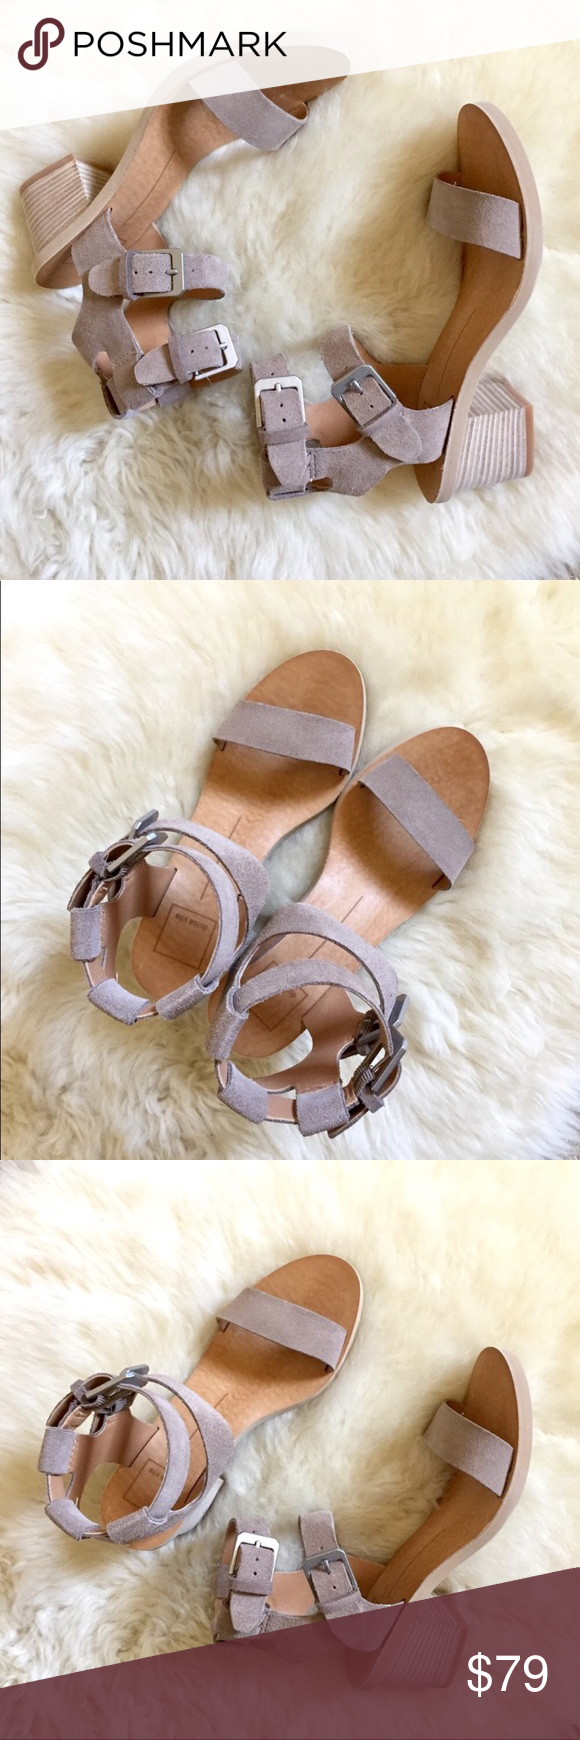 03dacd80e46 Dolce Vita West Dual Ankle Strap Taupe Sandals New In Box- Taupe ...